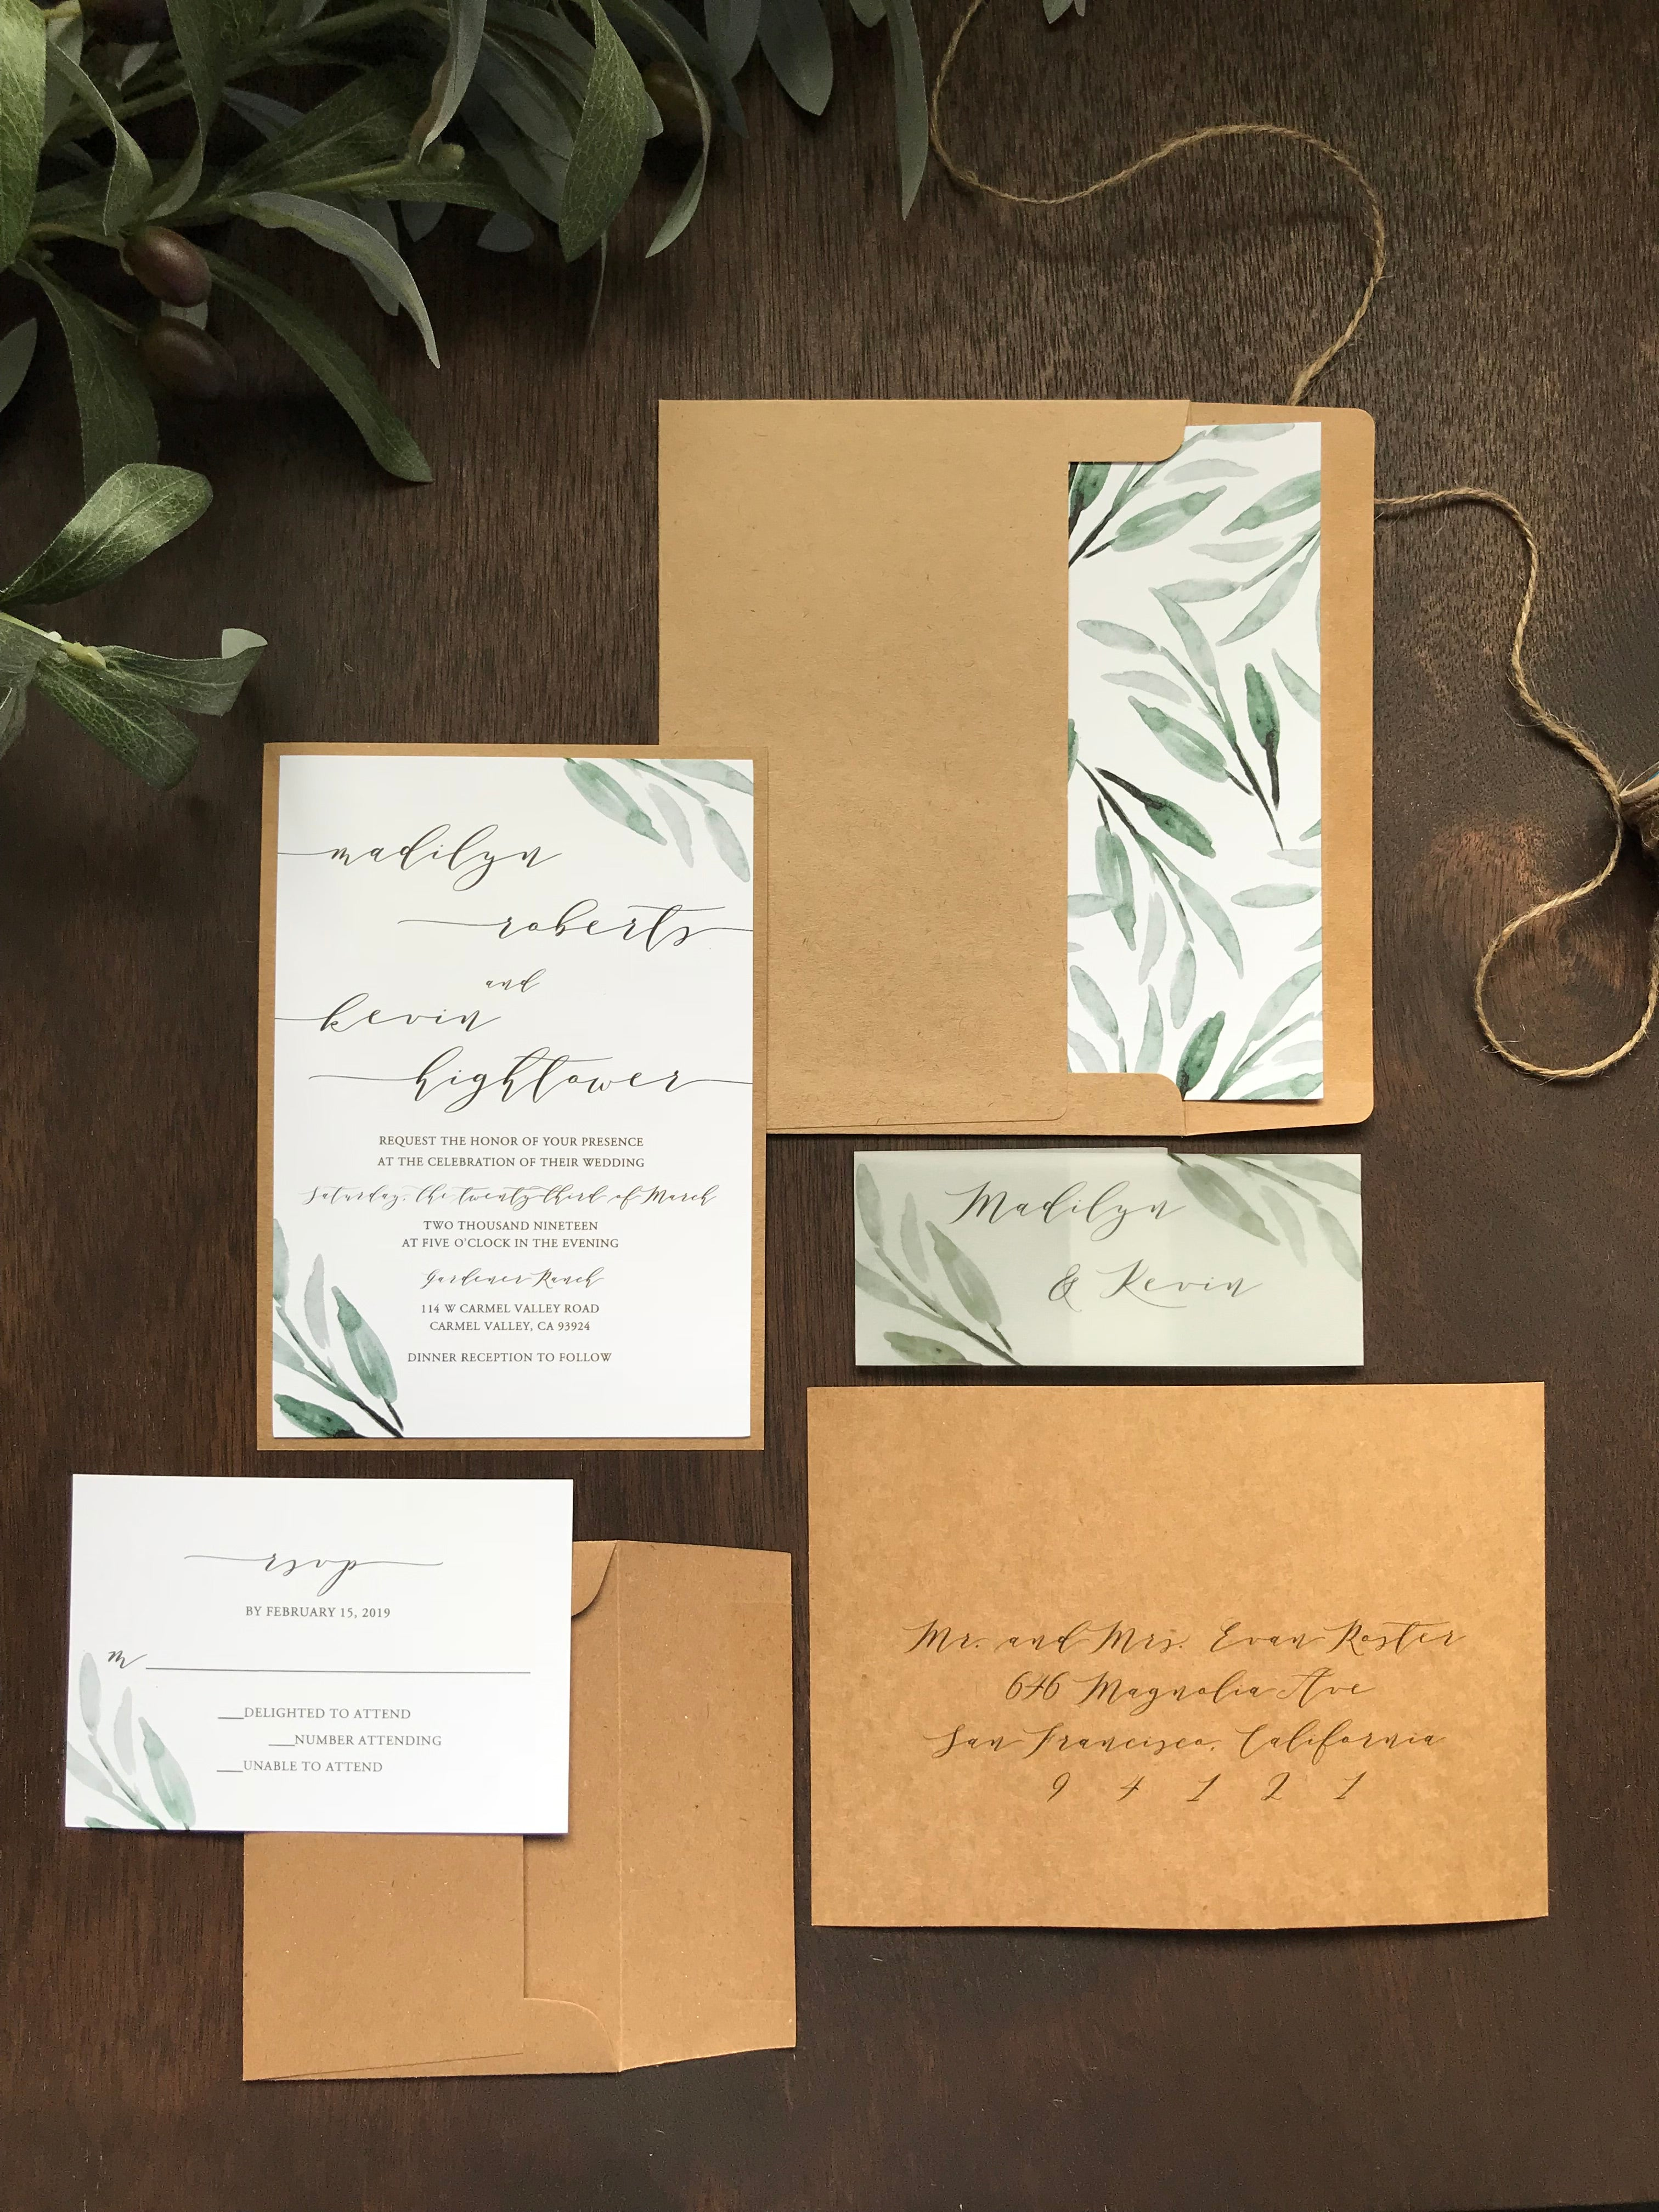 Rustic Greenery Wedding Invitation with Vellum belly band